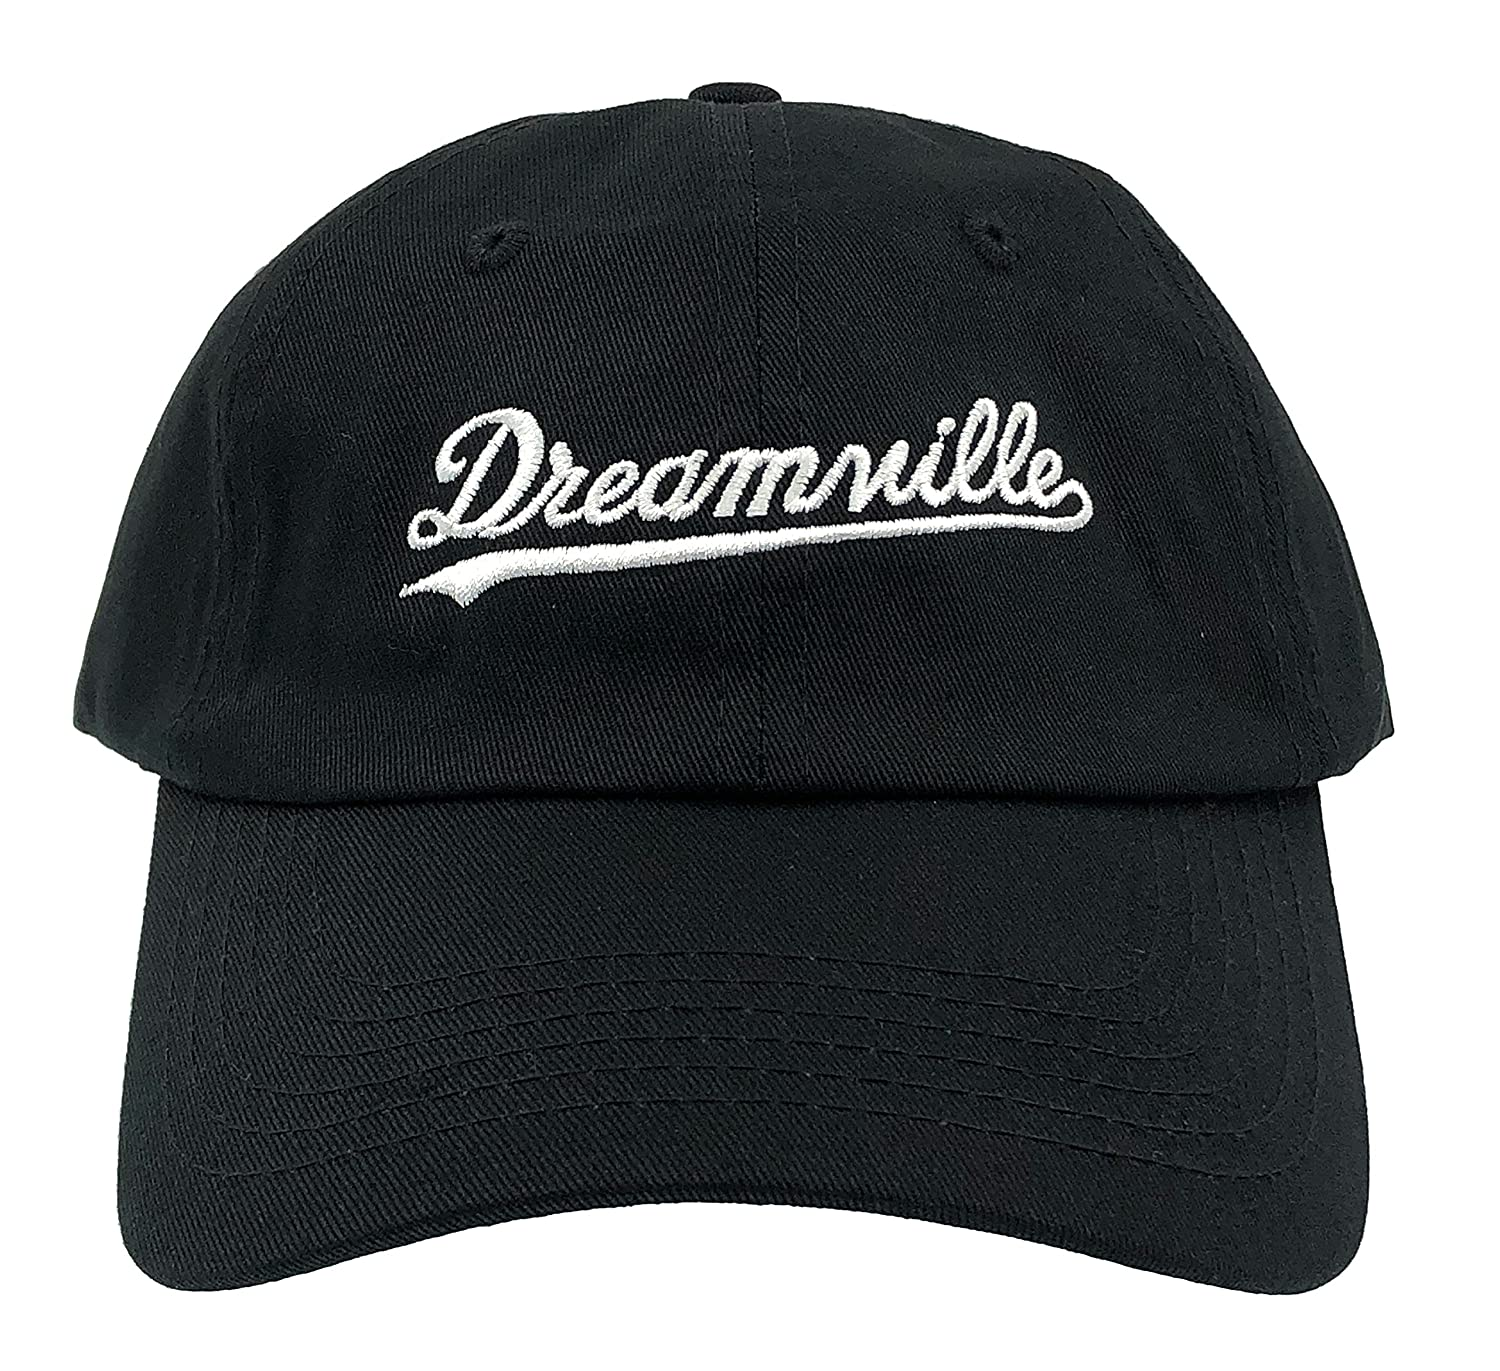 af50b101caa5c Amazon.com  Dream Hat Born Sinner Crown Dad Hat Baseball Cap Embroidered  Adjustable (Black)  Clothing